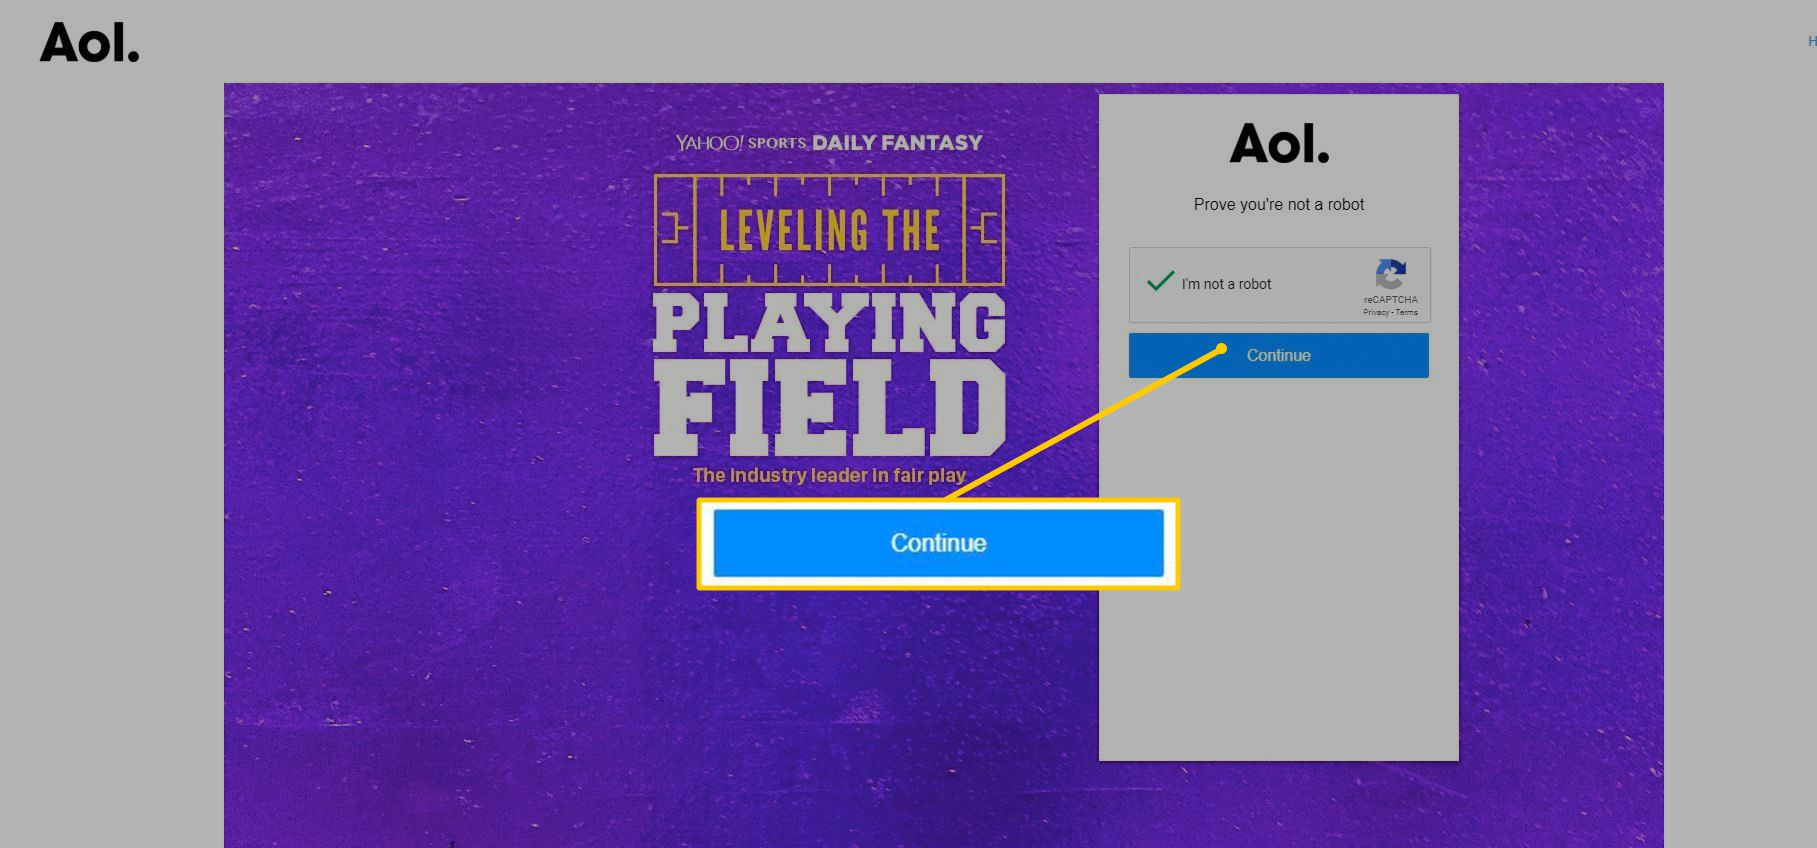 Continue button after sign in on AOL